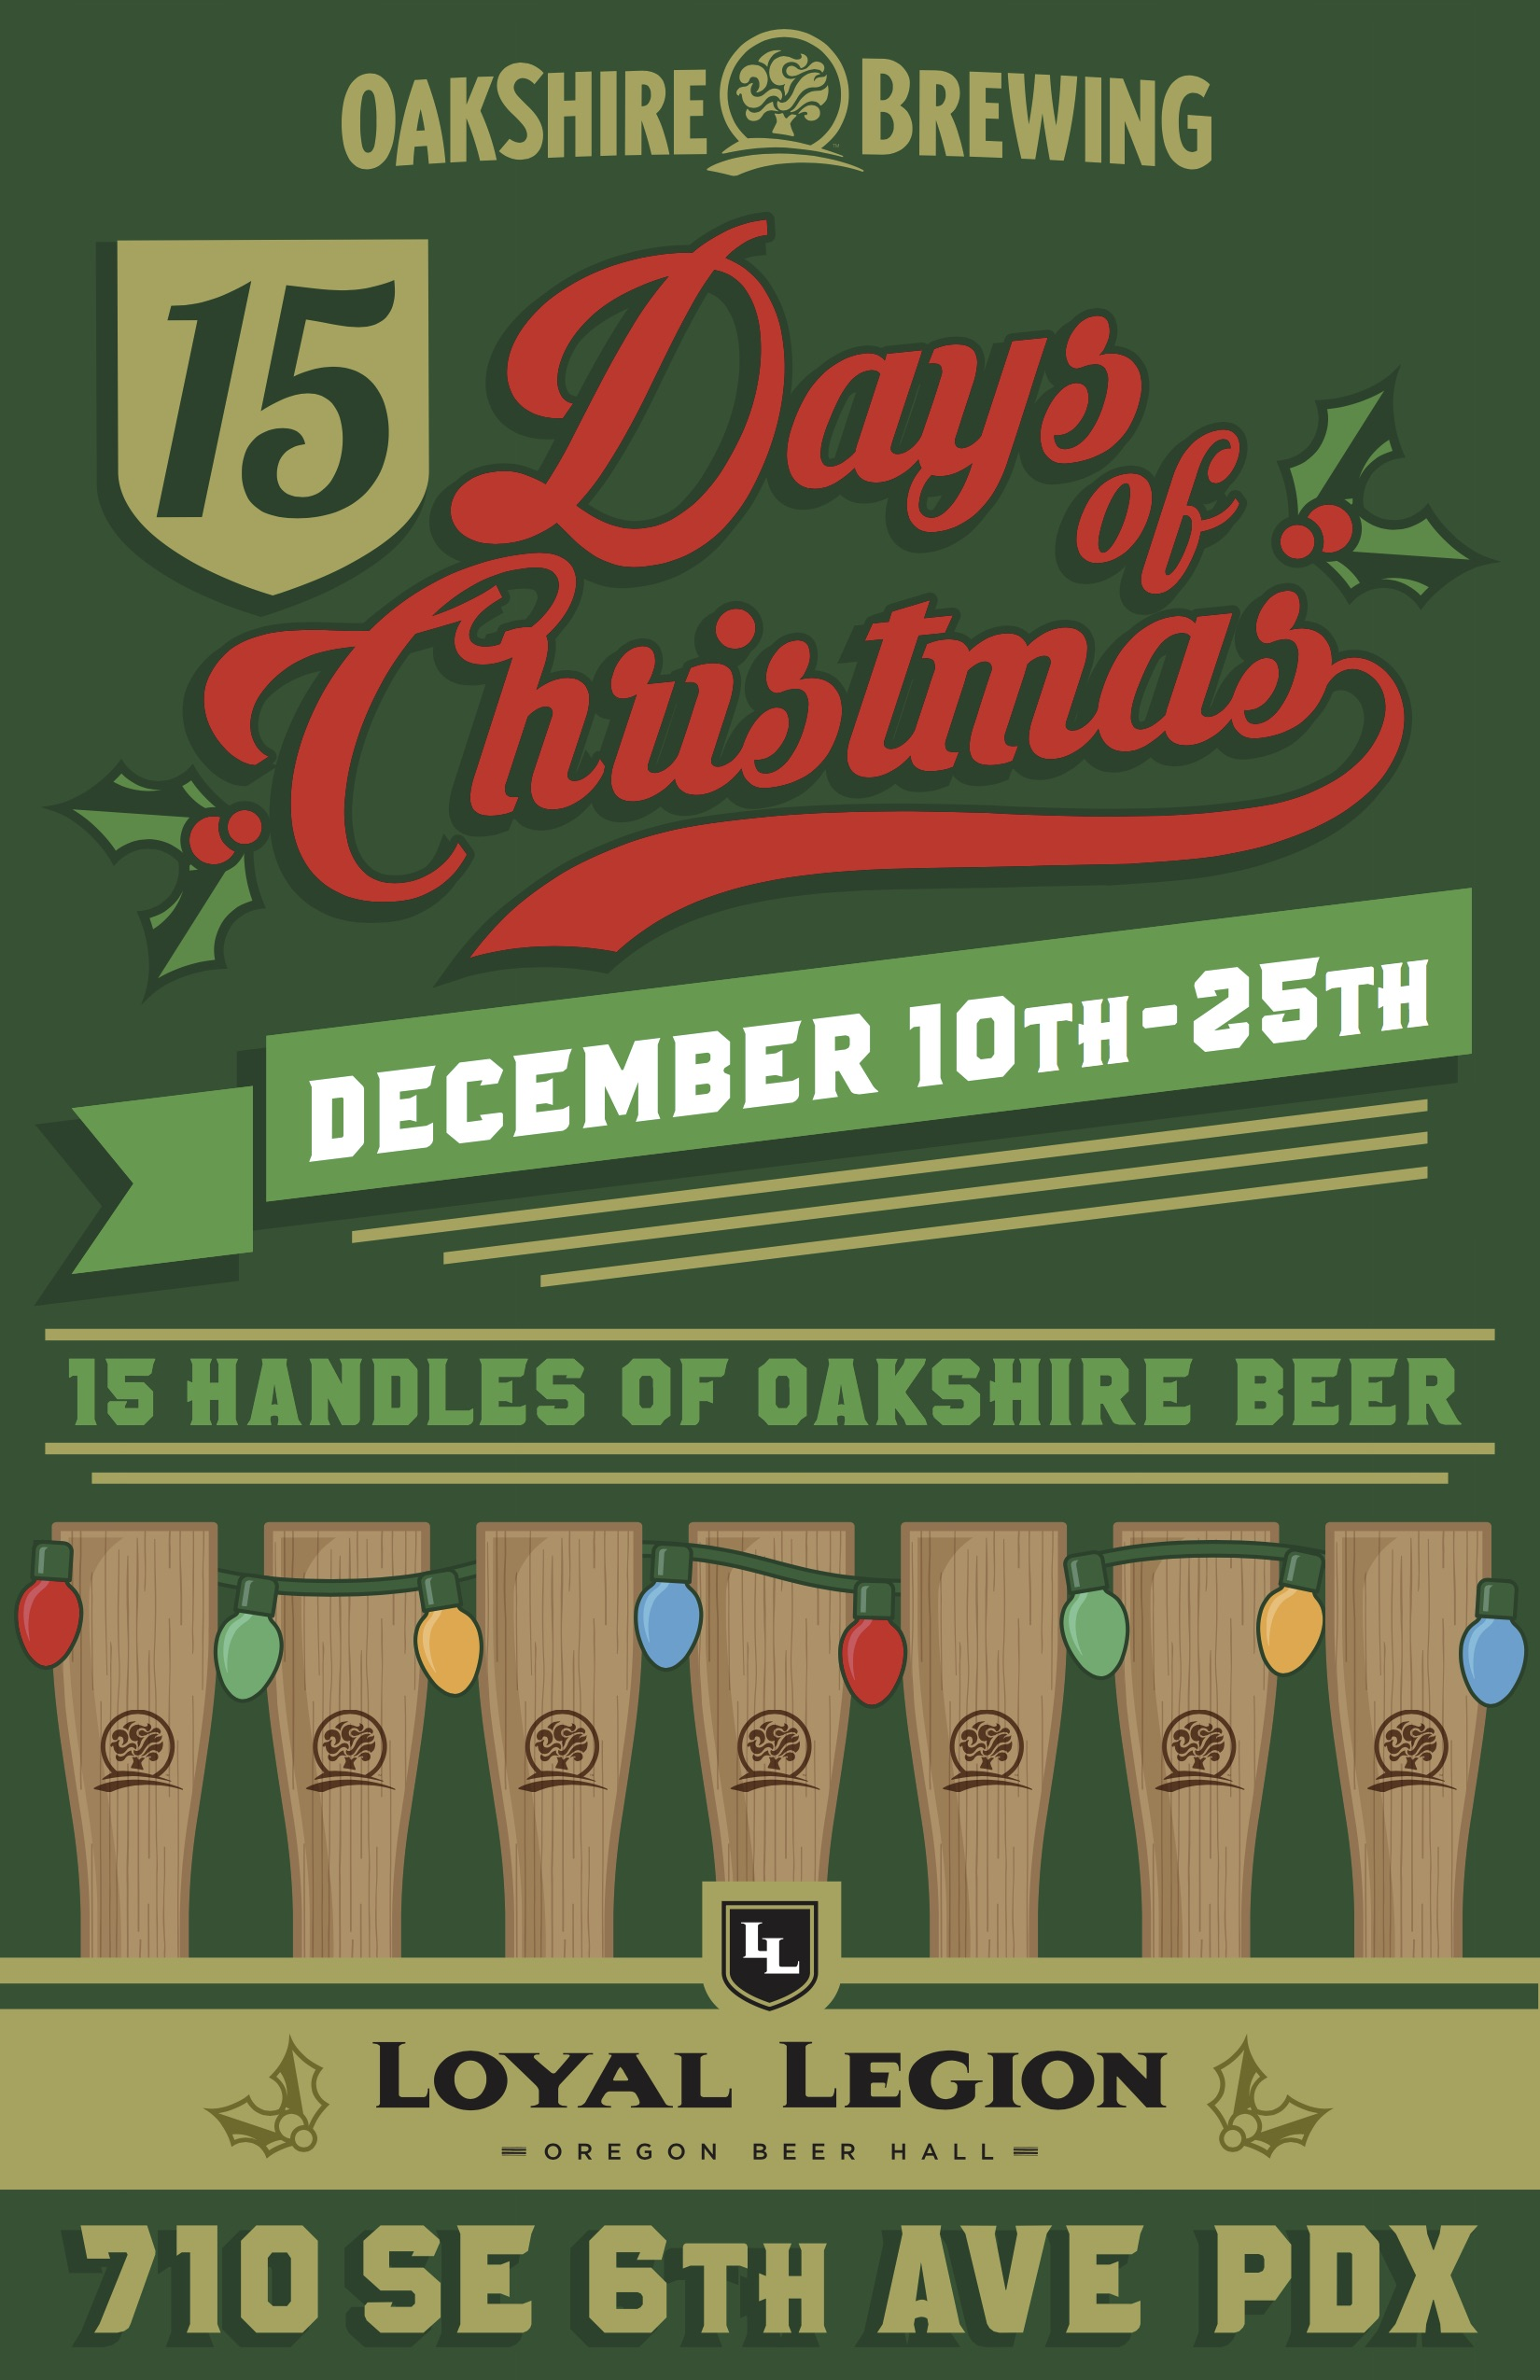 15 Days of Christmas with 15 Handles of Oakshire Beer at Loyal Legion